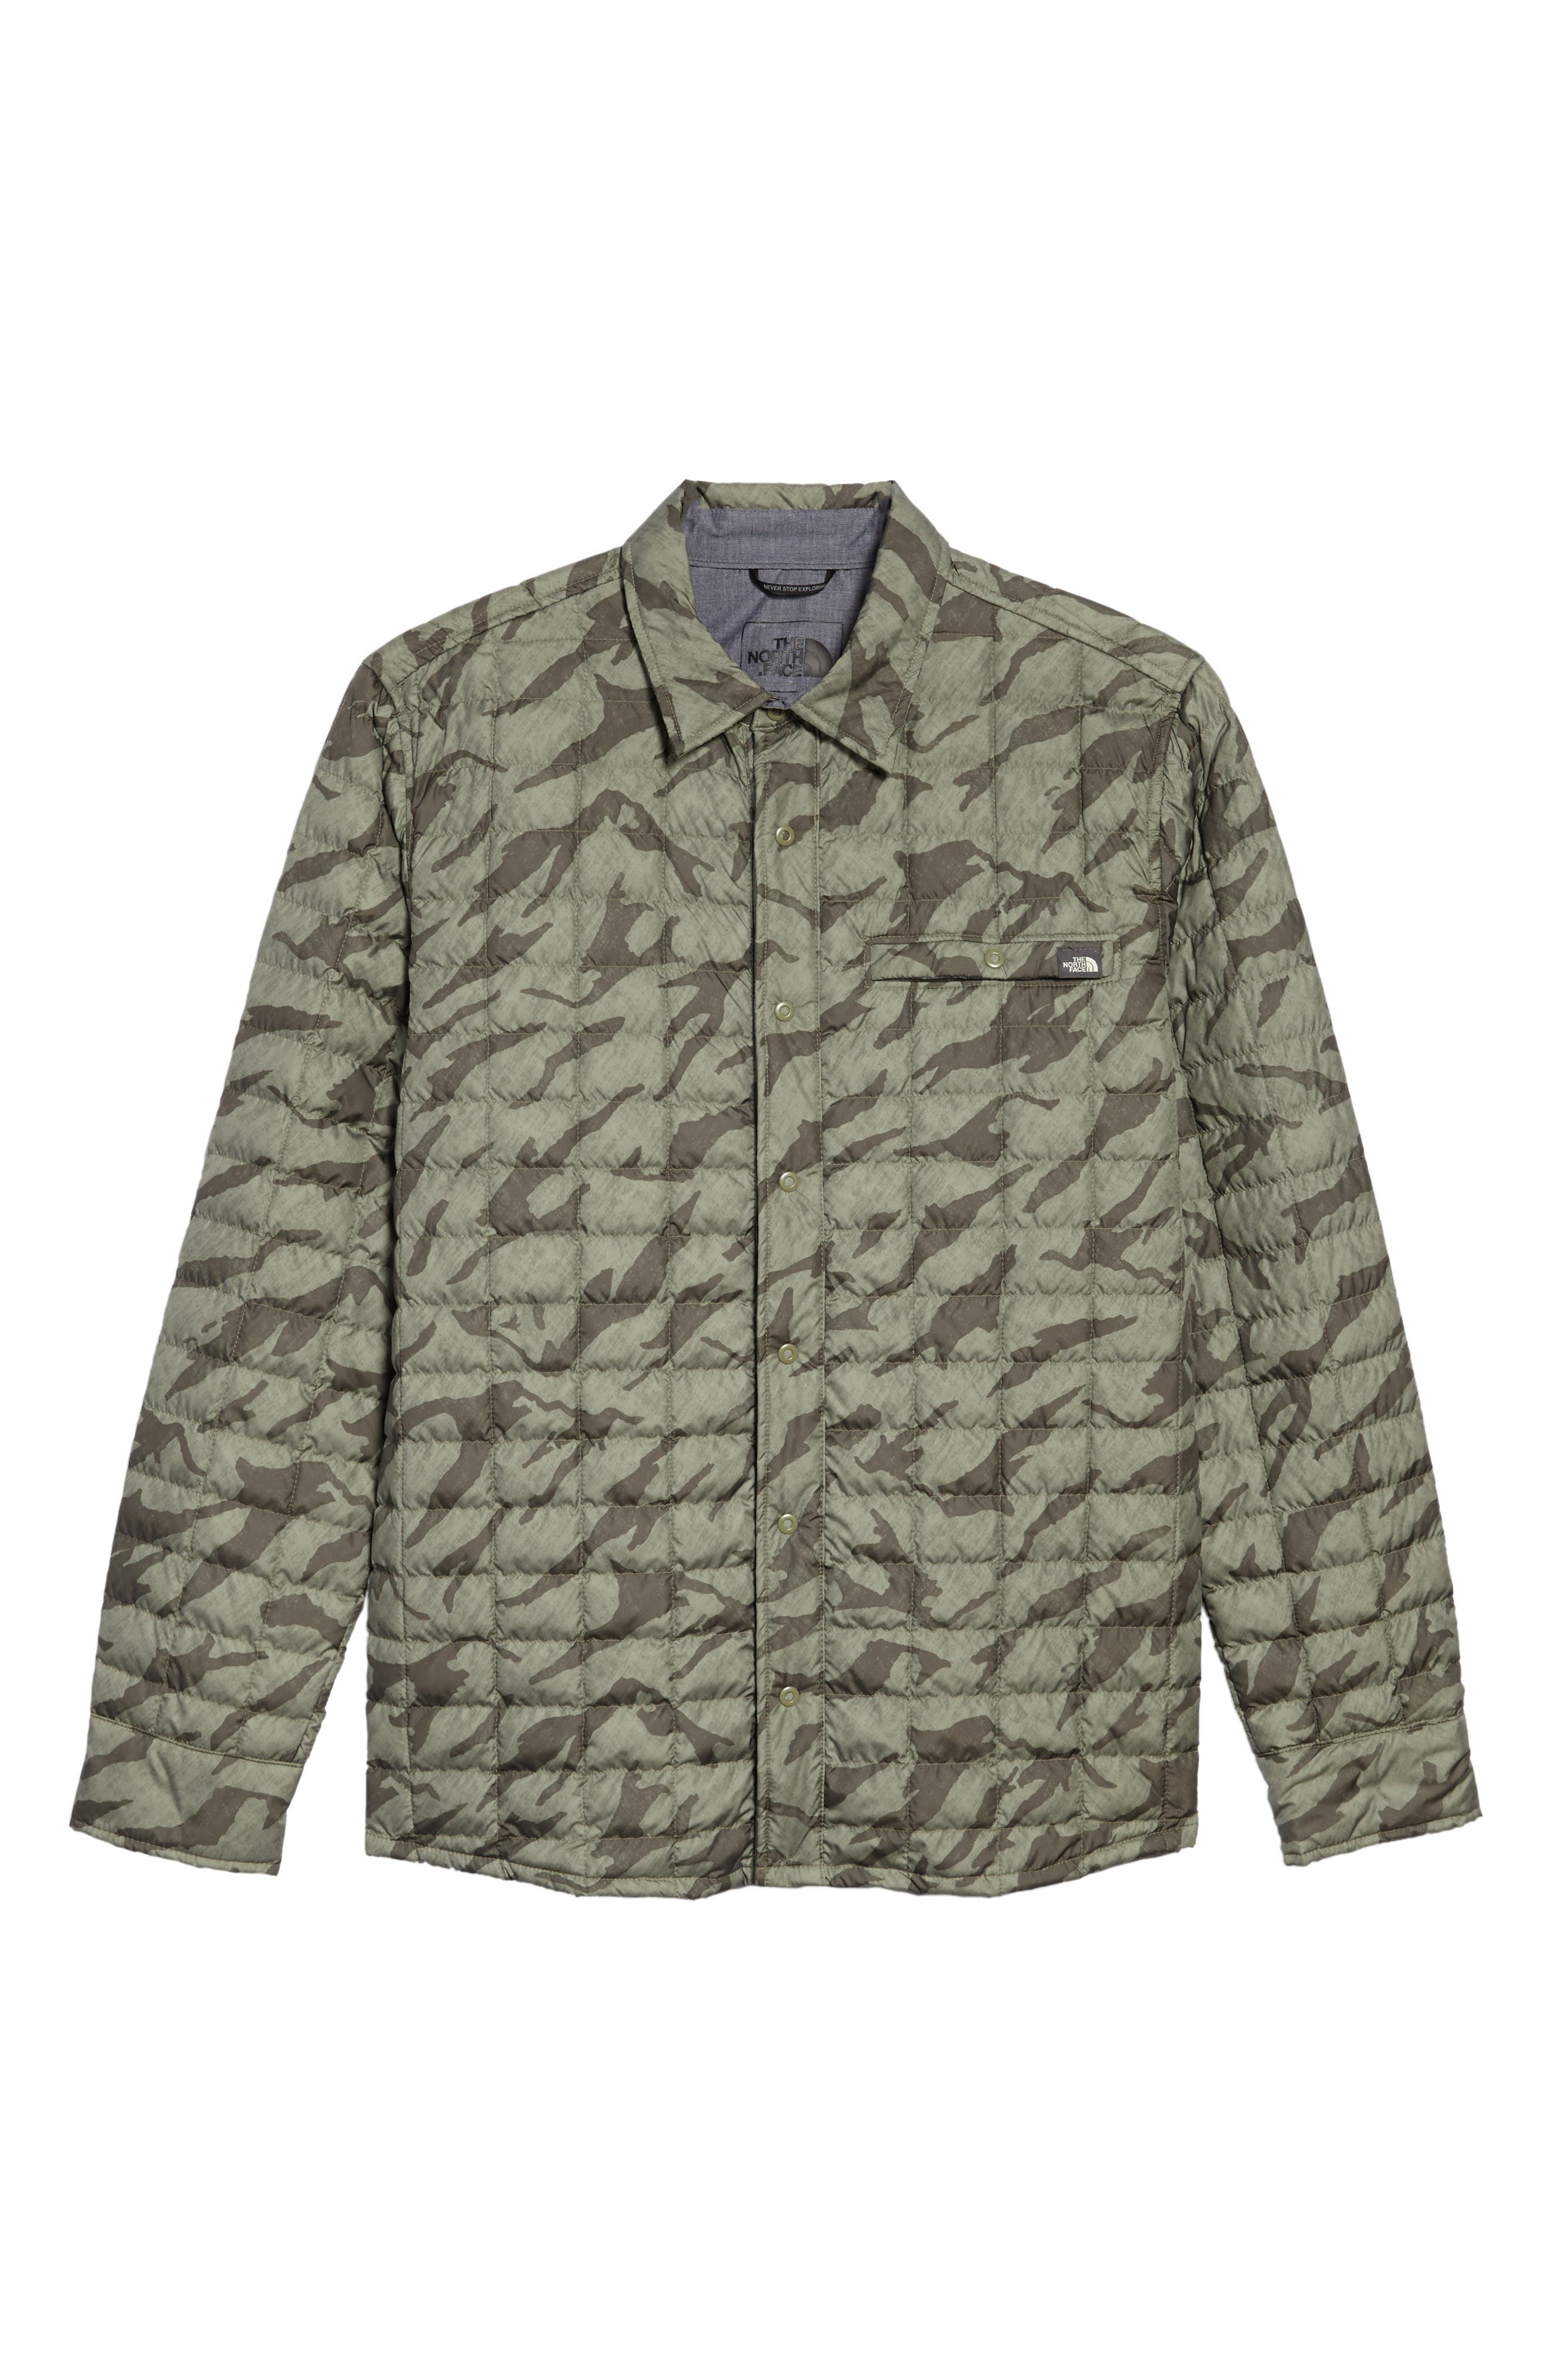 Reyes ThermoBall Shirt Jacket,                             Alternate thumbnail 6, color,                             Deep Lichen Green